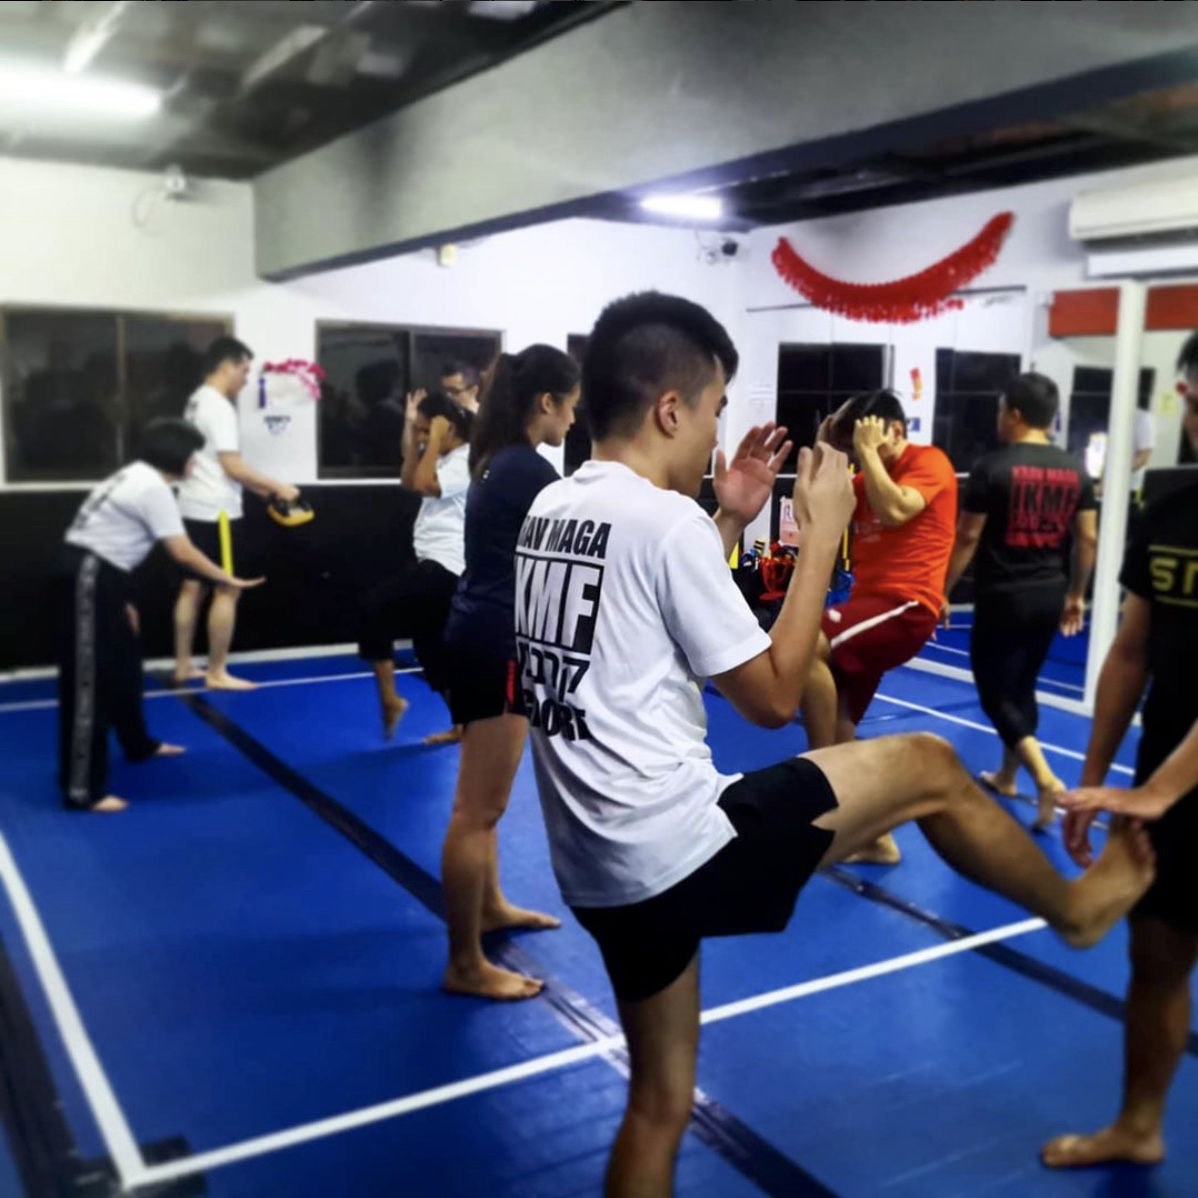 International Krav Maga Federation Singapore Jurong East Interior